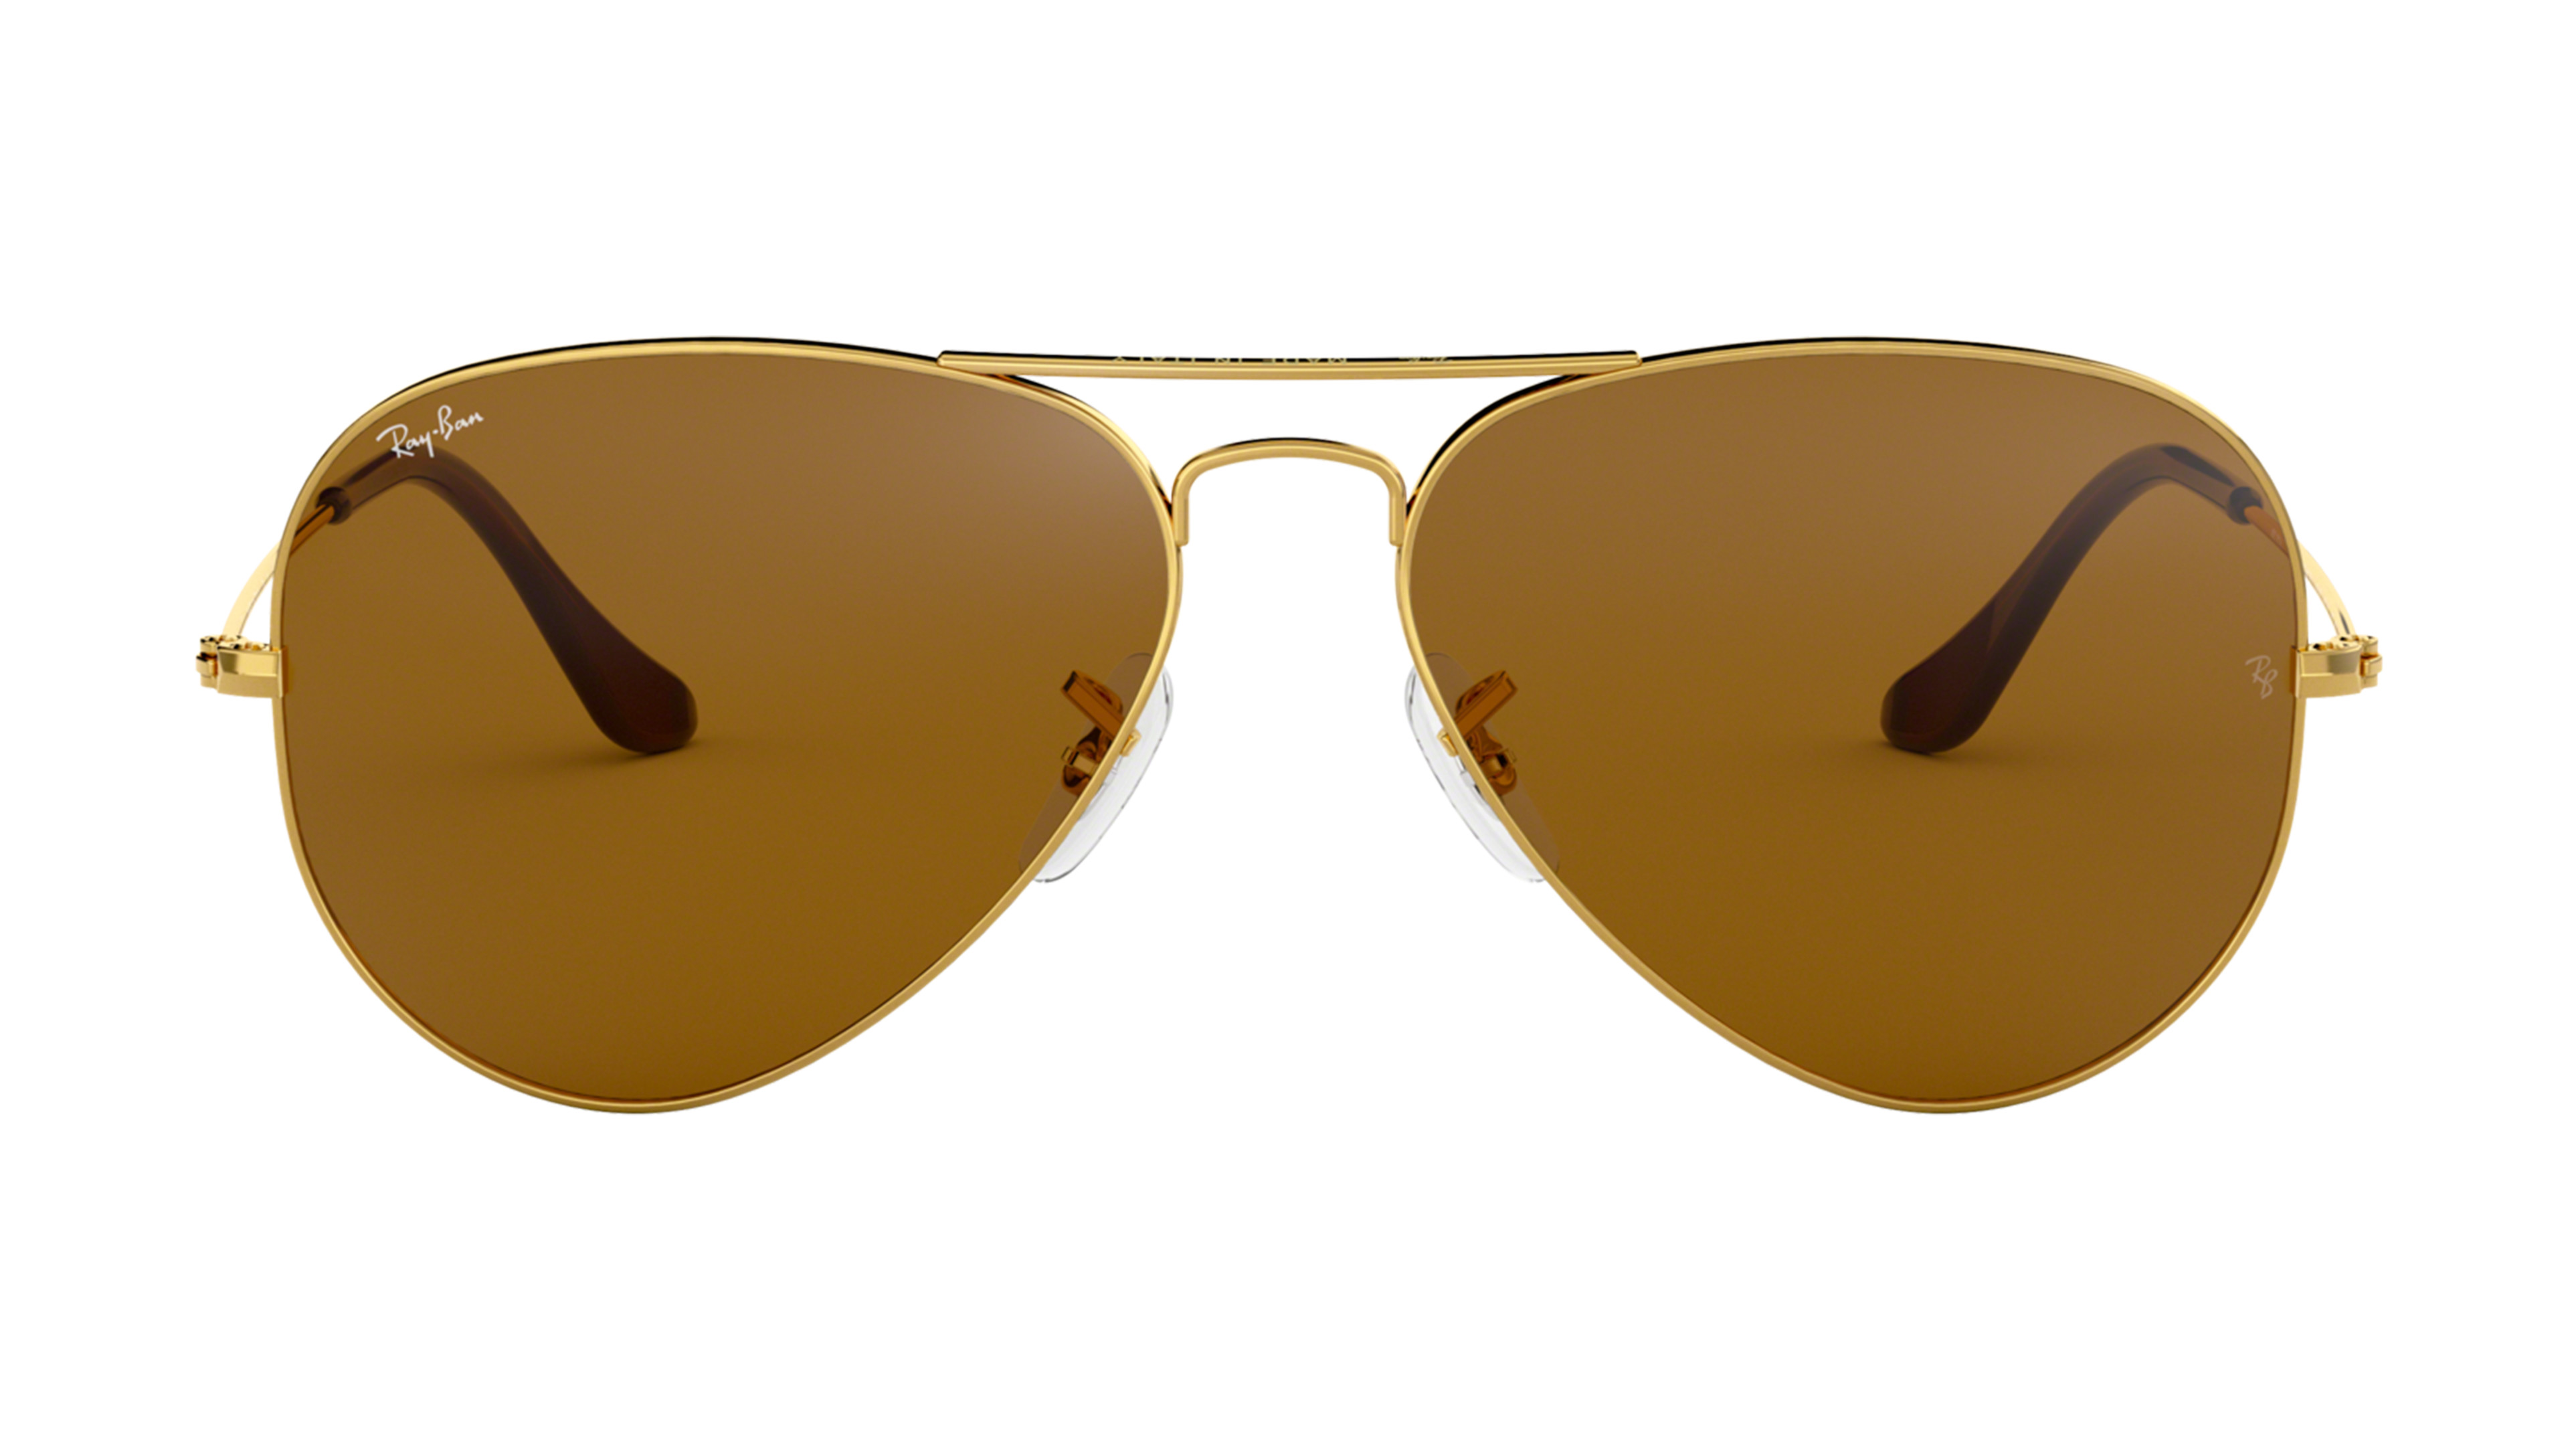 0805289178316-front-Ray-Ban-0RB3025-001-33-Pilot